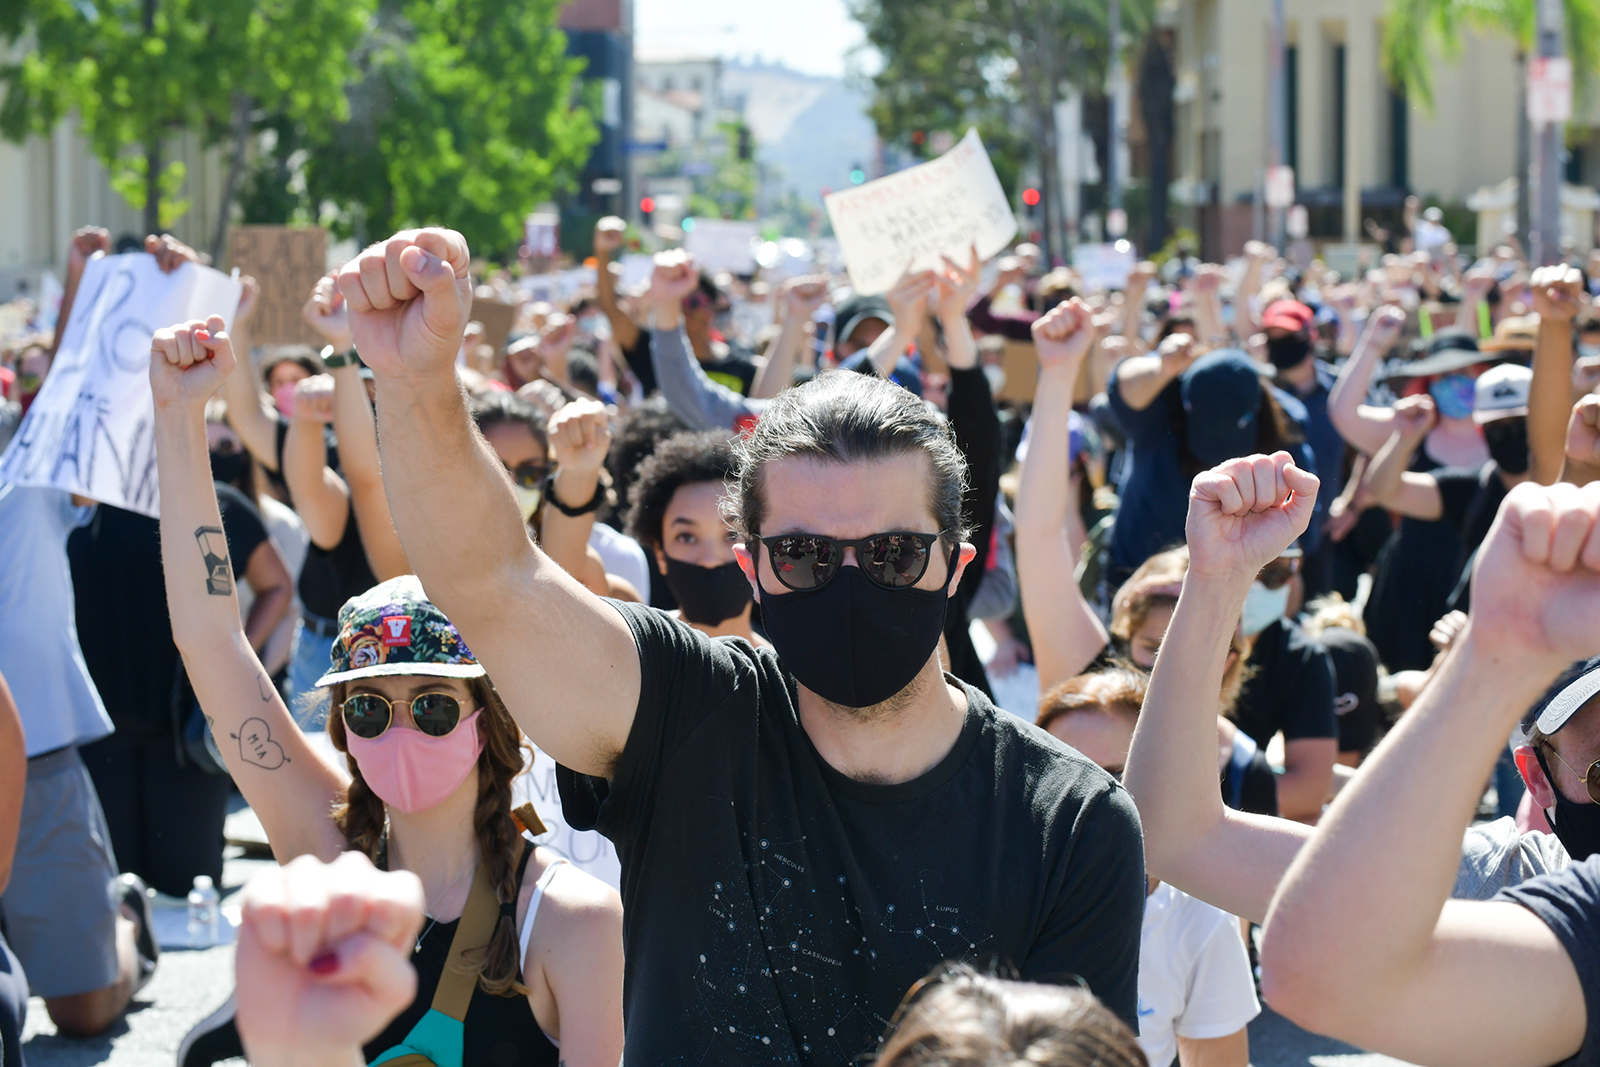 Protesters raise fists in solidarity at the Glendale Community March and Vigil for Black Lives Matter on June 7, in Glendale, California.